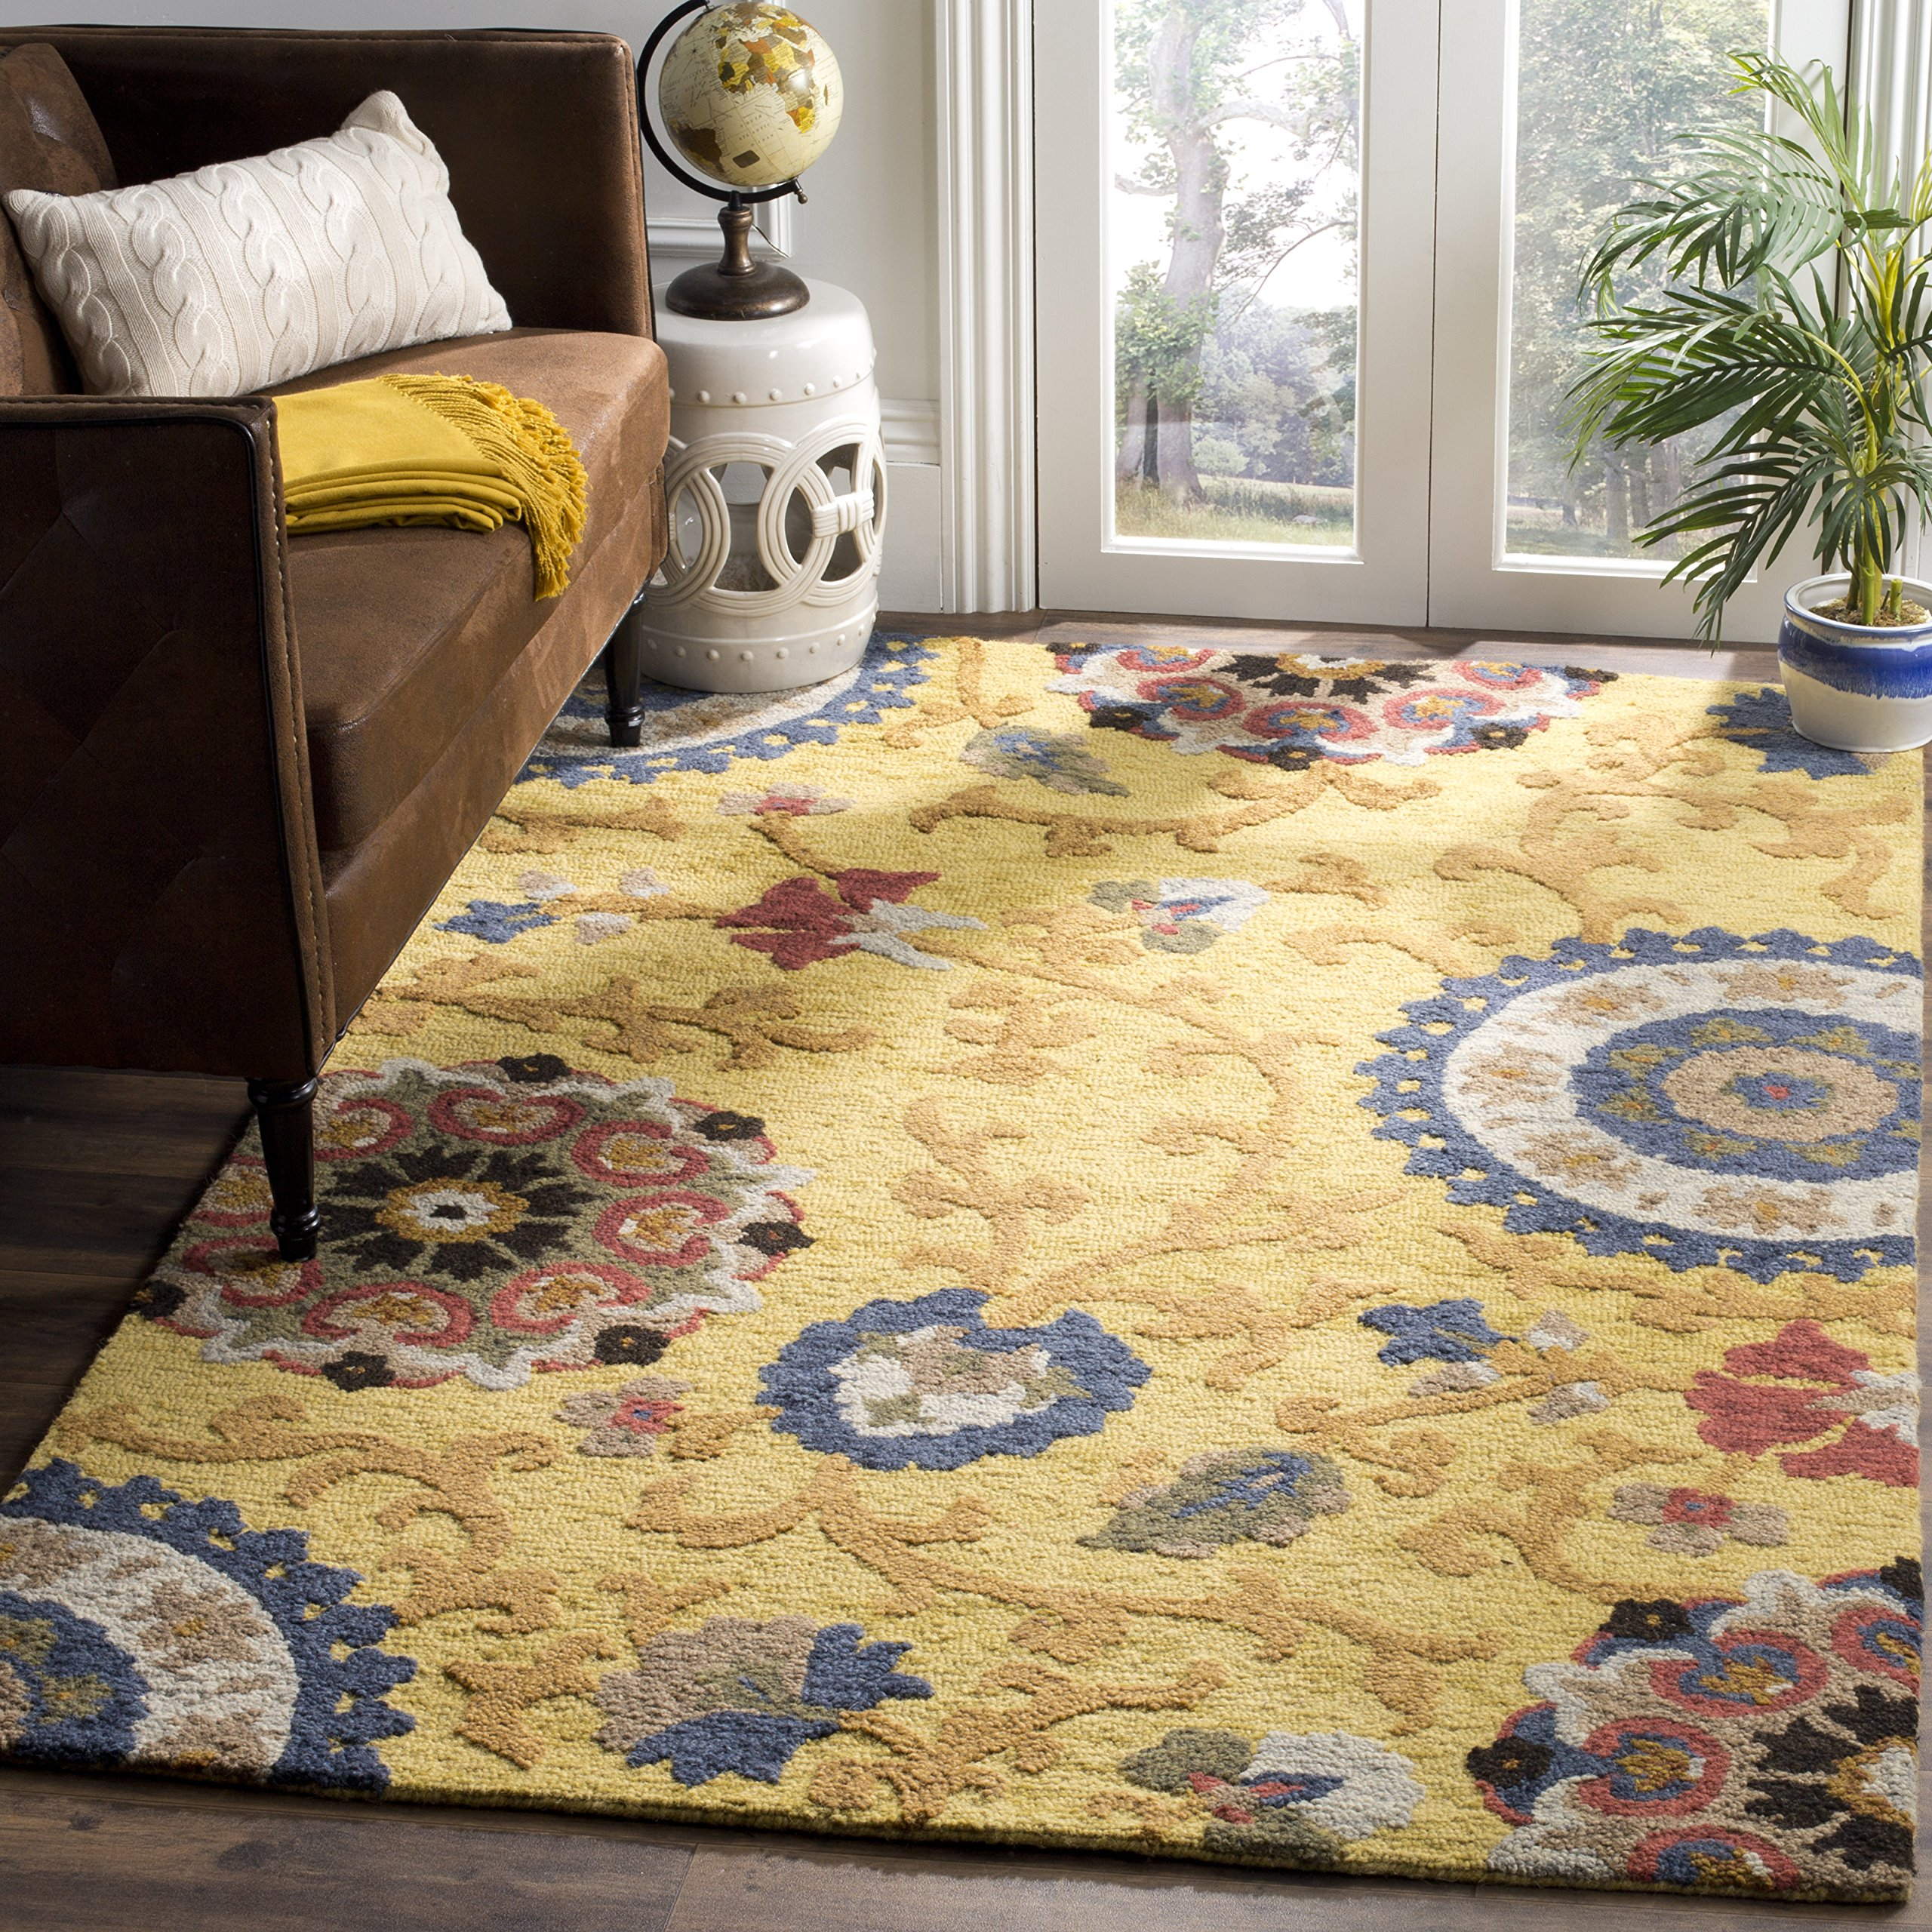 Safavieh Blossom Collection BLM401B Handmade Floral Vines Gold and Multi Premium Wool Area Rug (2' x 3')